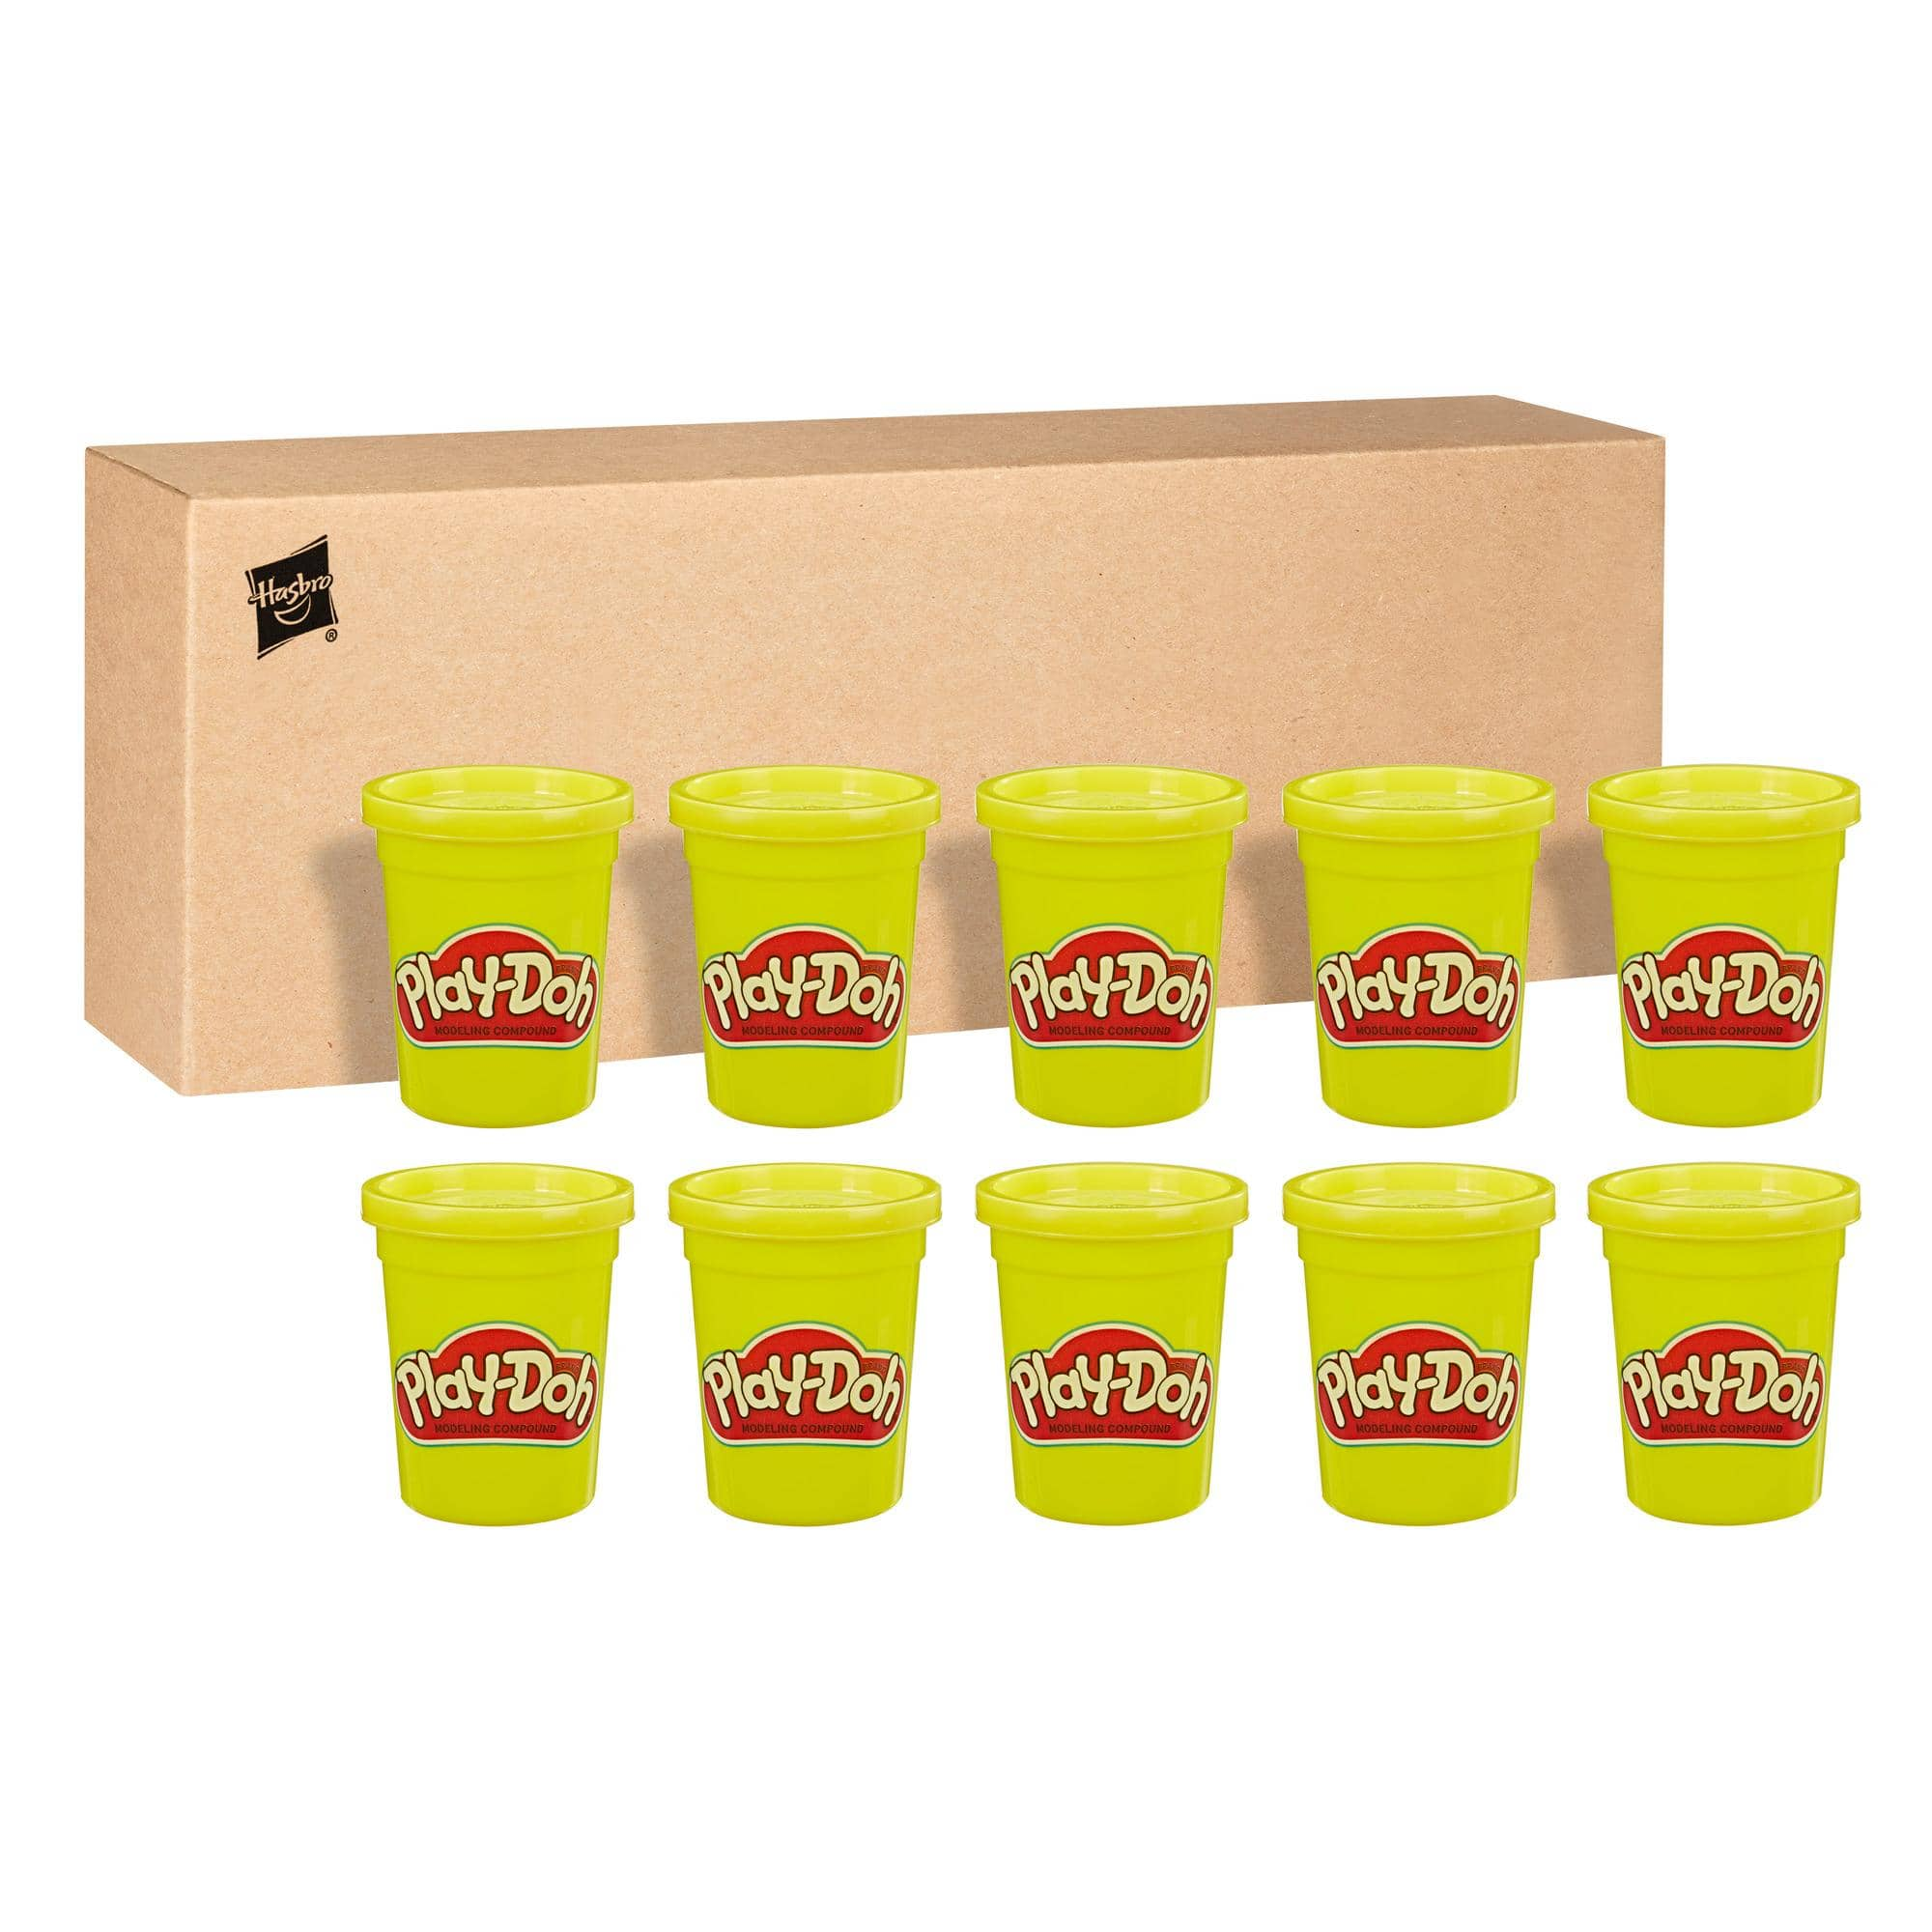 12-Pack 4-Oz Play-Doh Modeling Compound (Yellow) $3.65 + Free Shipping w/ Walmart+ or $35+